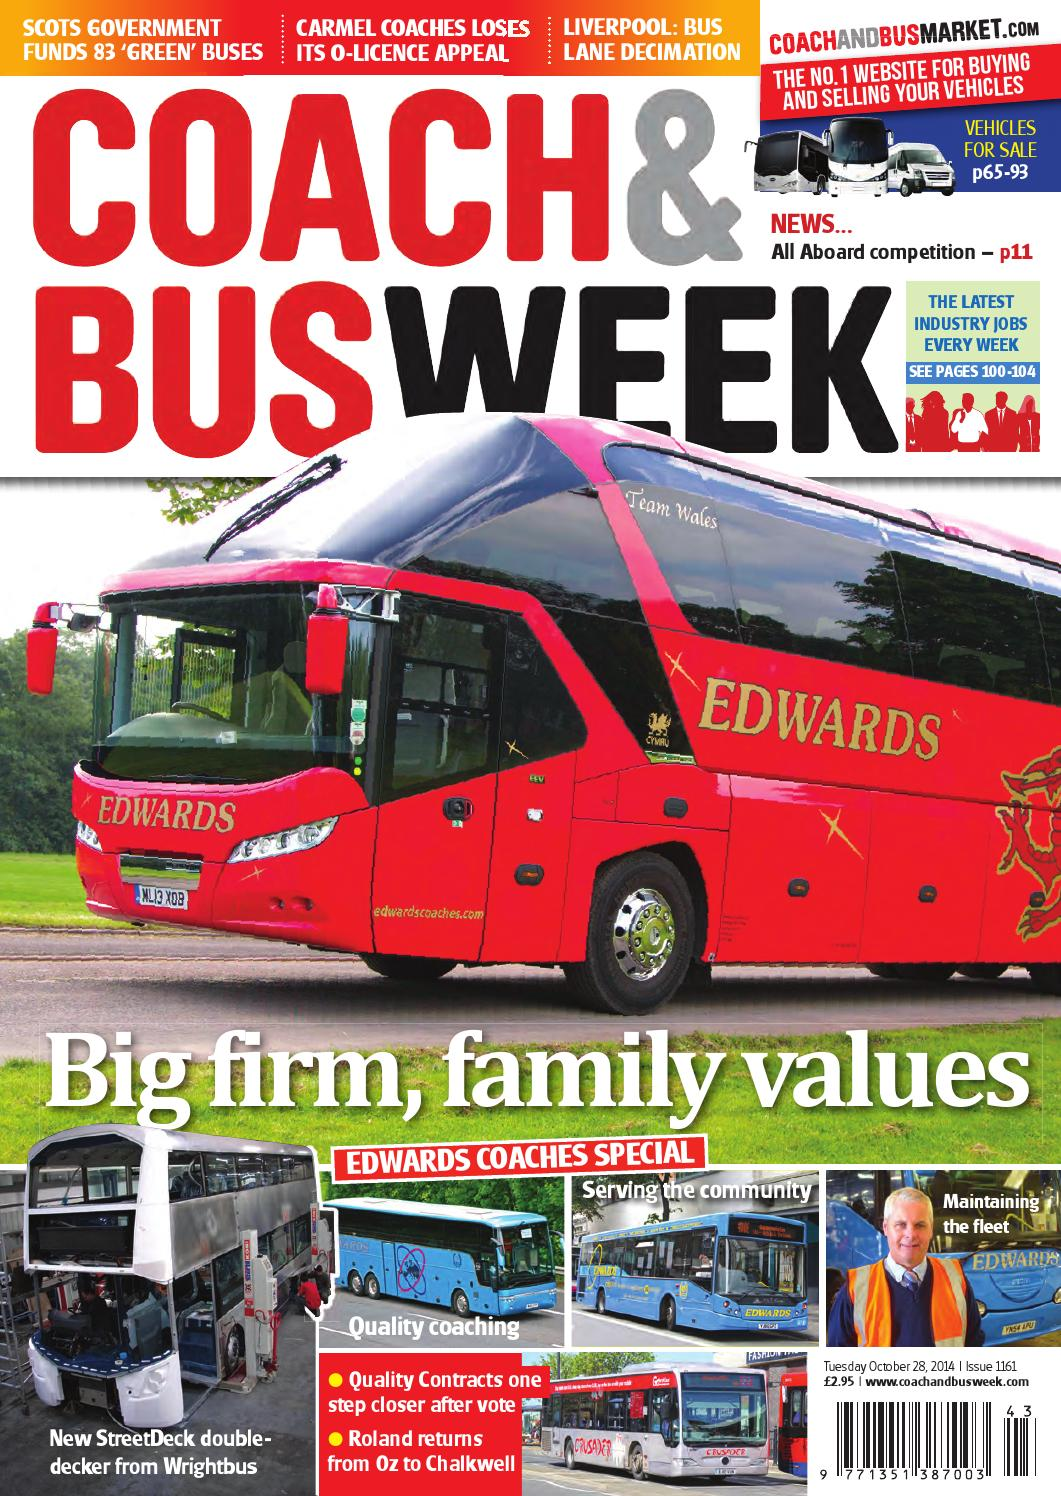 Coach bus week issue 1161 by coach and bus week group travel coach bus week issue 1161 by coach and bus week group travel world issuu falaconquin